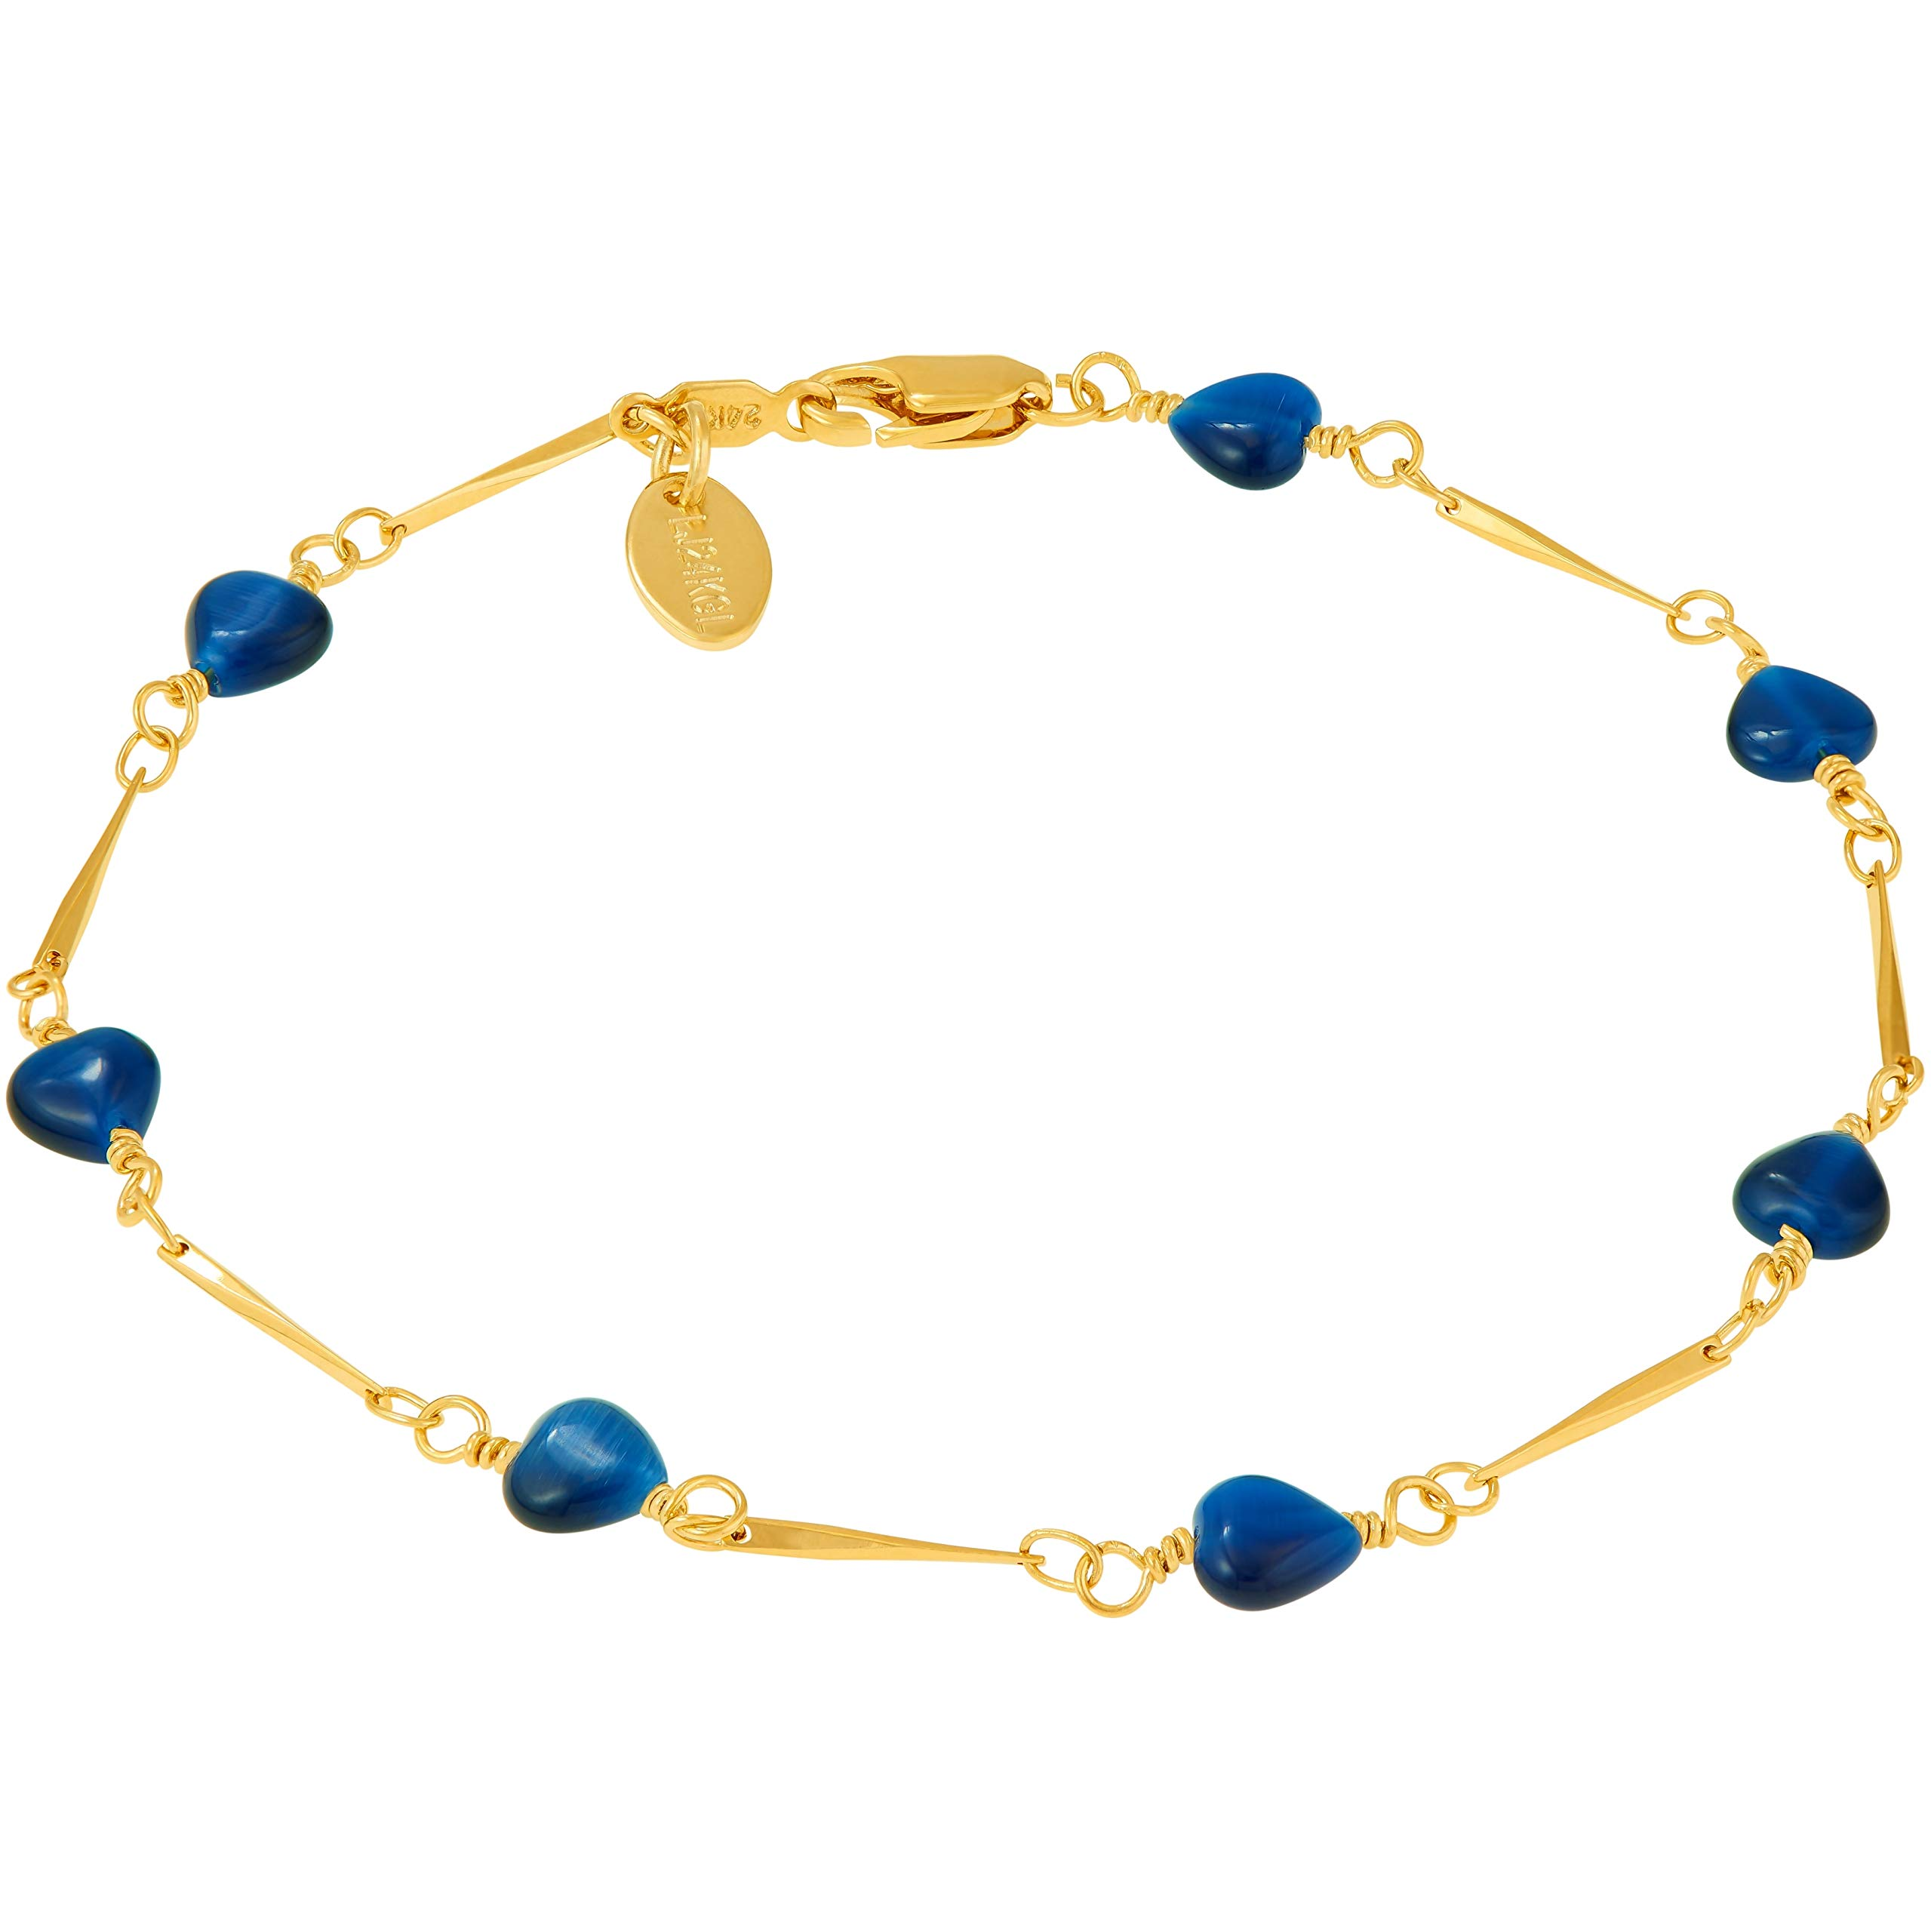 Lifetime Jewelry Ankle Bracelets for Women Men and Teens [ 24k Gold Plated Blue Hearts Anklet ] Cute & Durable Foot Jewelry for Beach or Party with Free Lifetime Replacement Guarantee (10.0)